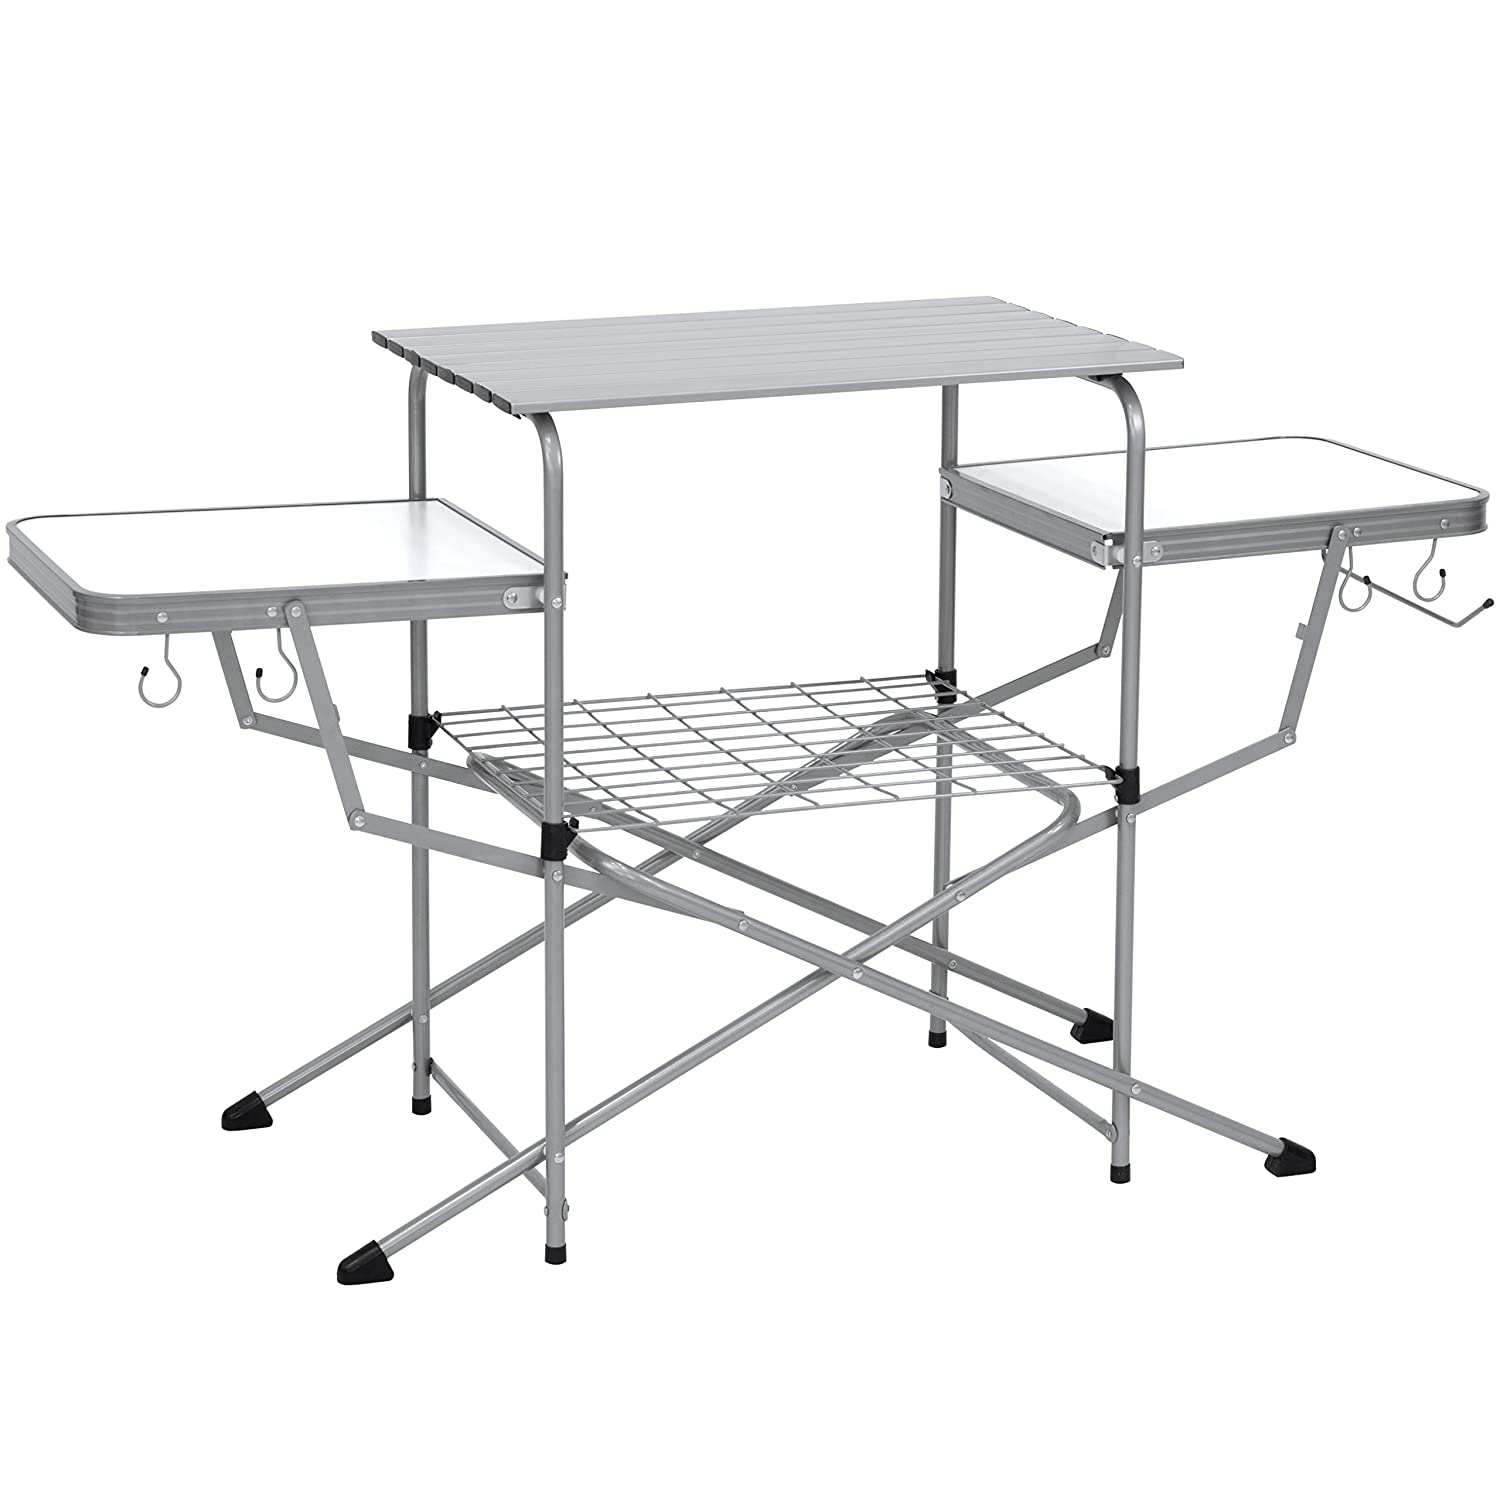 Best Choice Products Portable Outdoor Deluxe Folding Camping Grilling Table w/Carrying Case - Silver